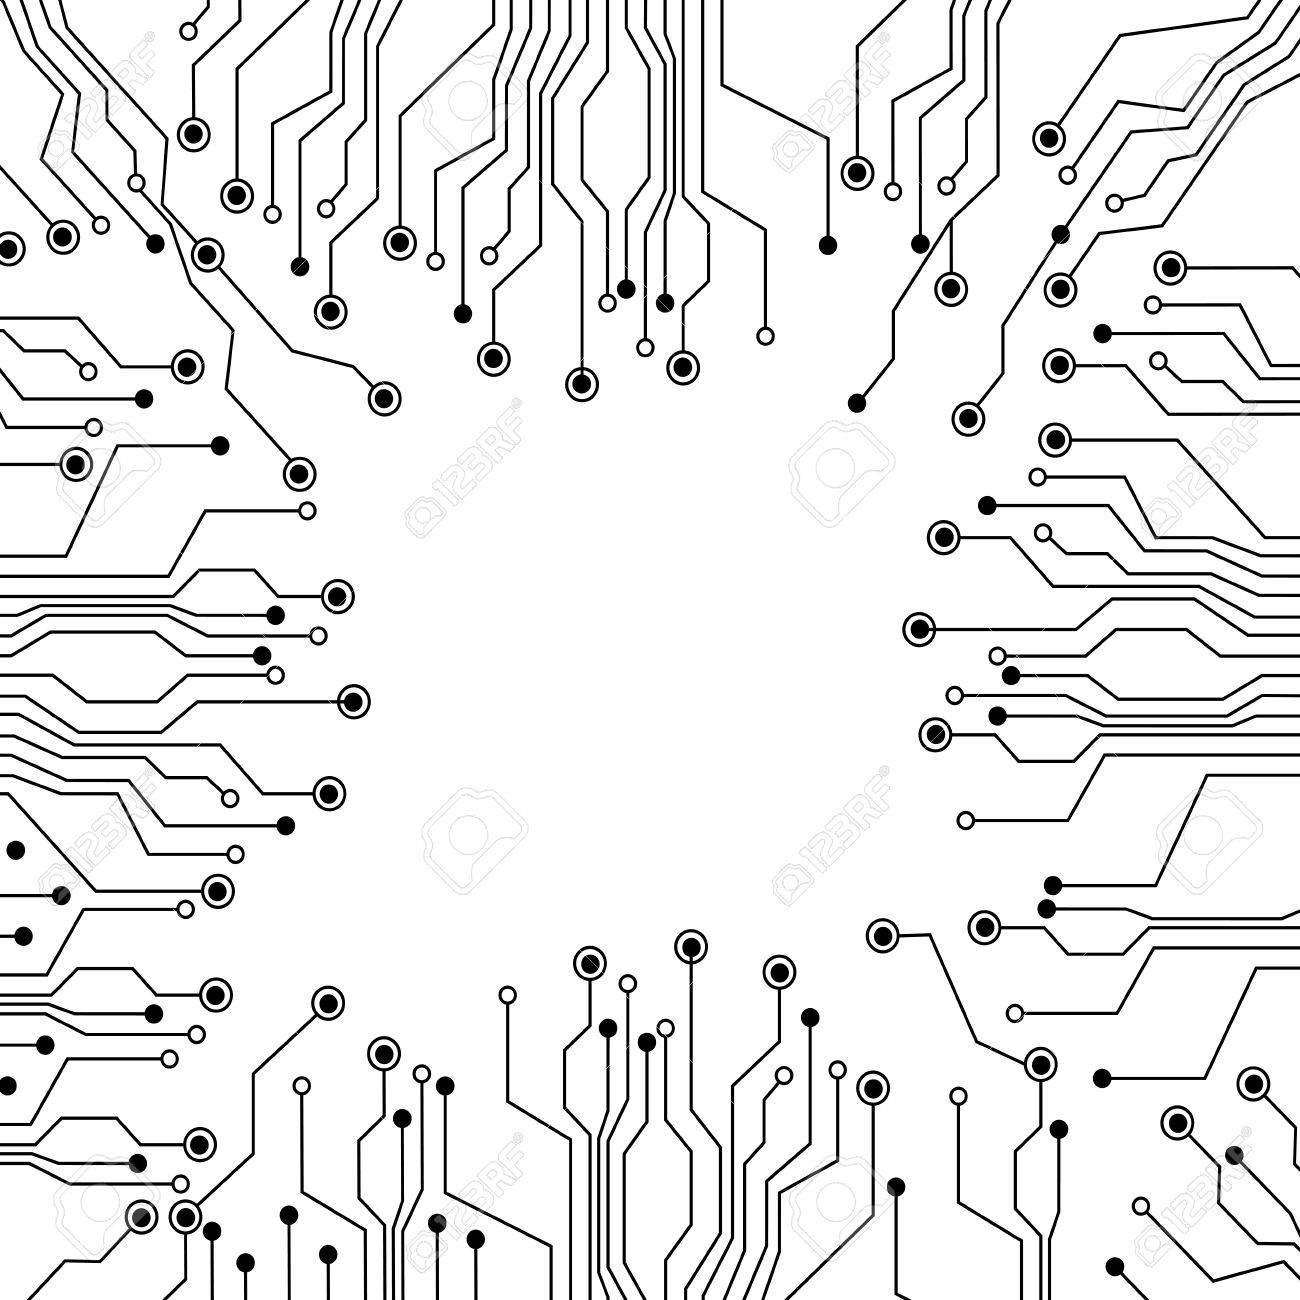 Figure Electrical Circuits Icon, Vector Illustraction Design Royalty ...